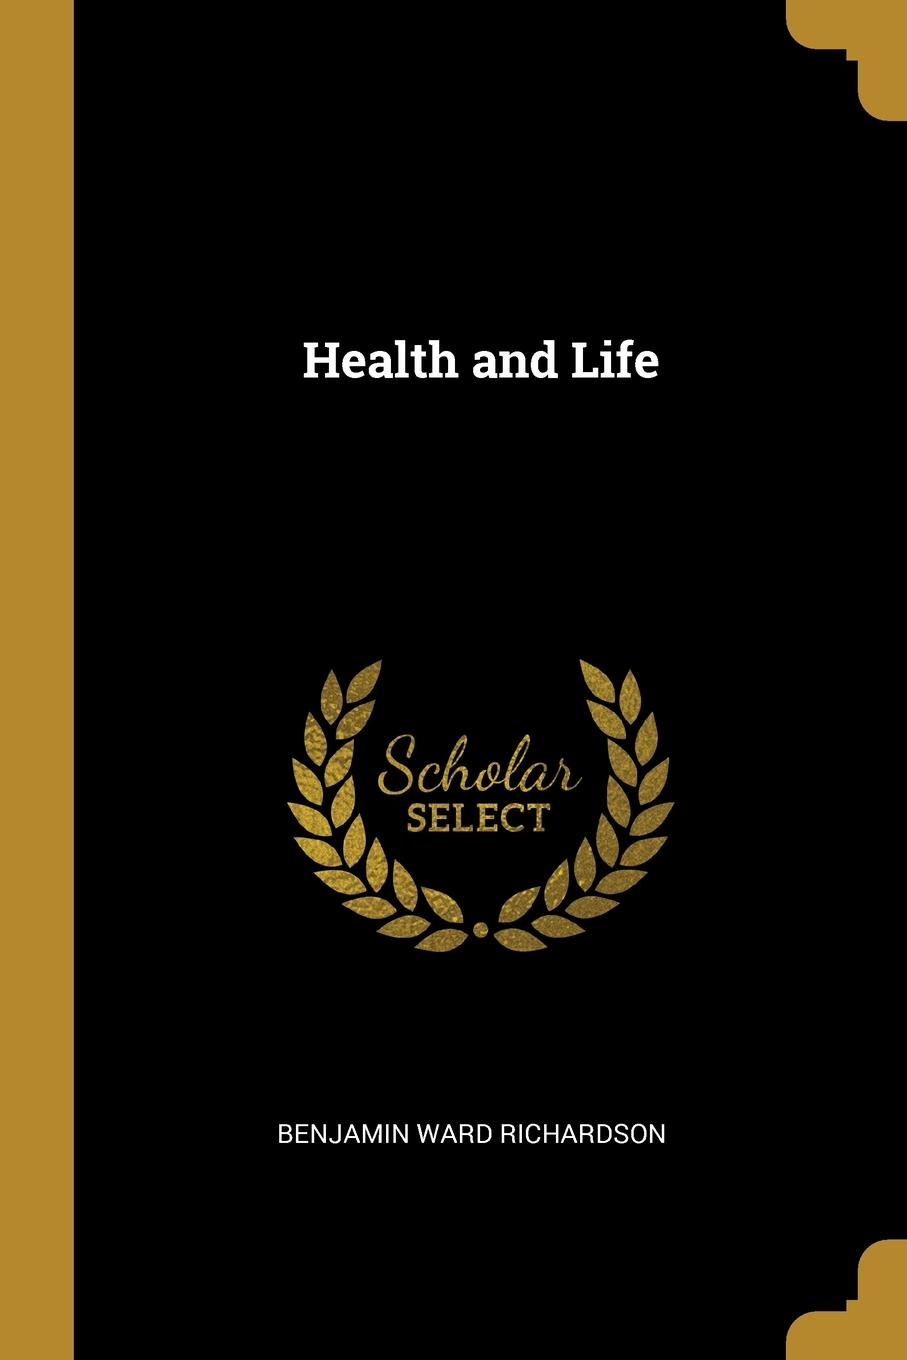 Health and Life